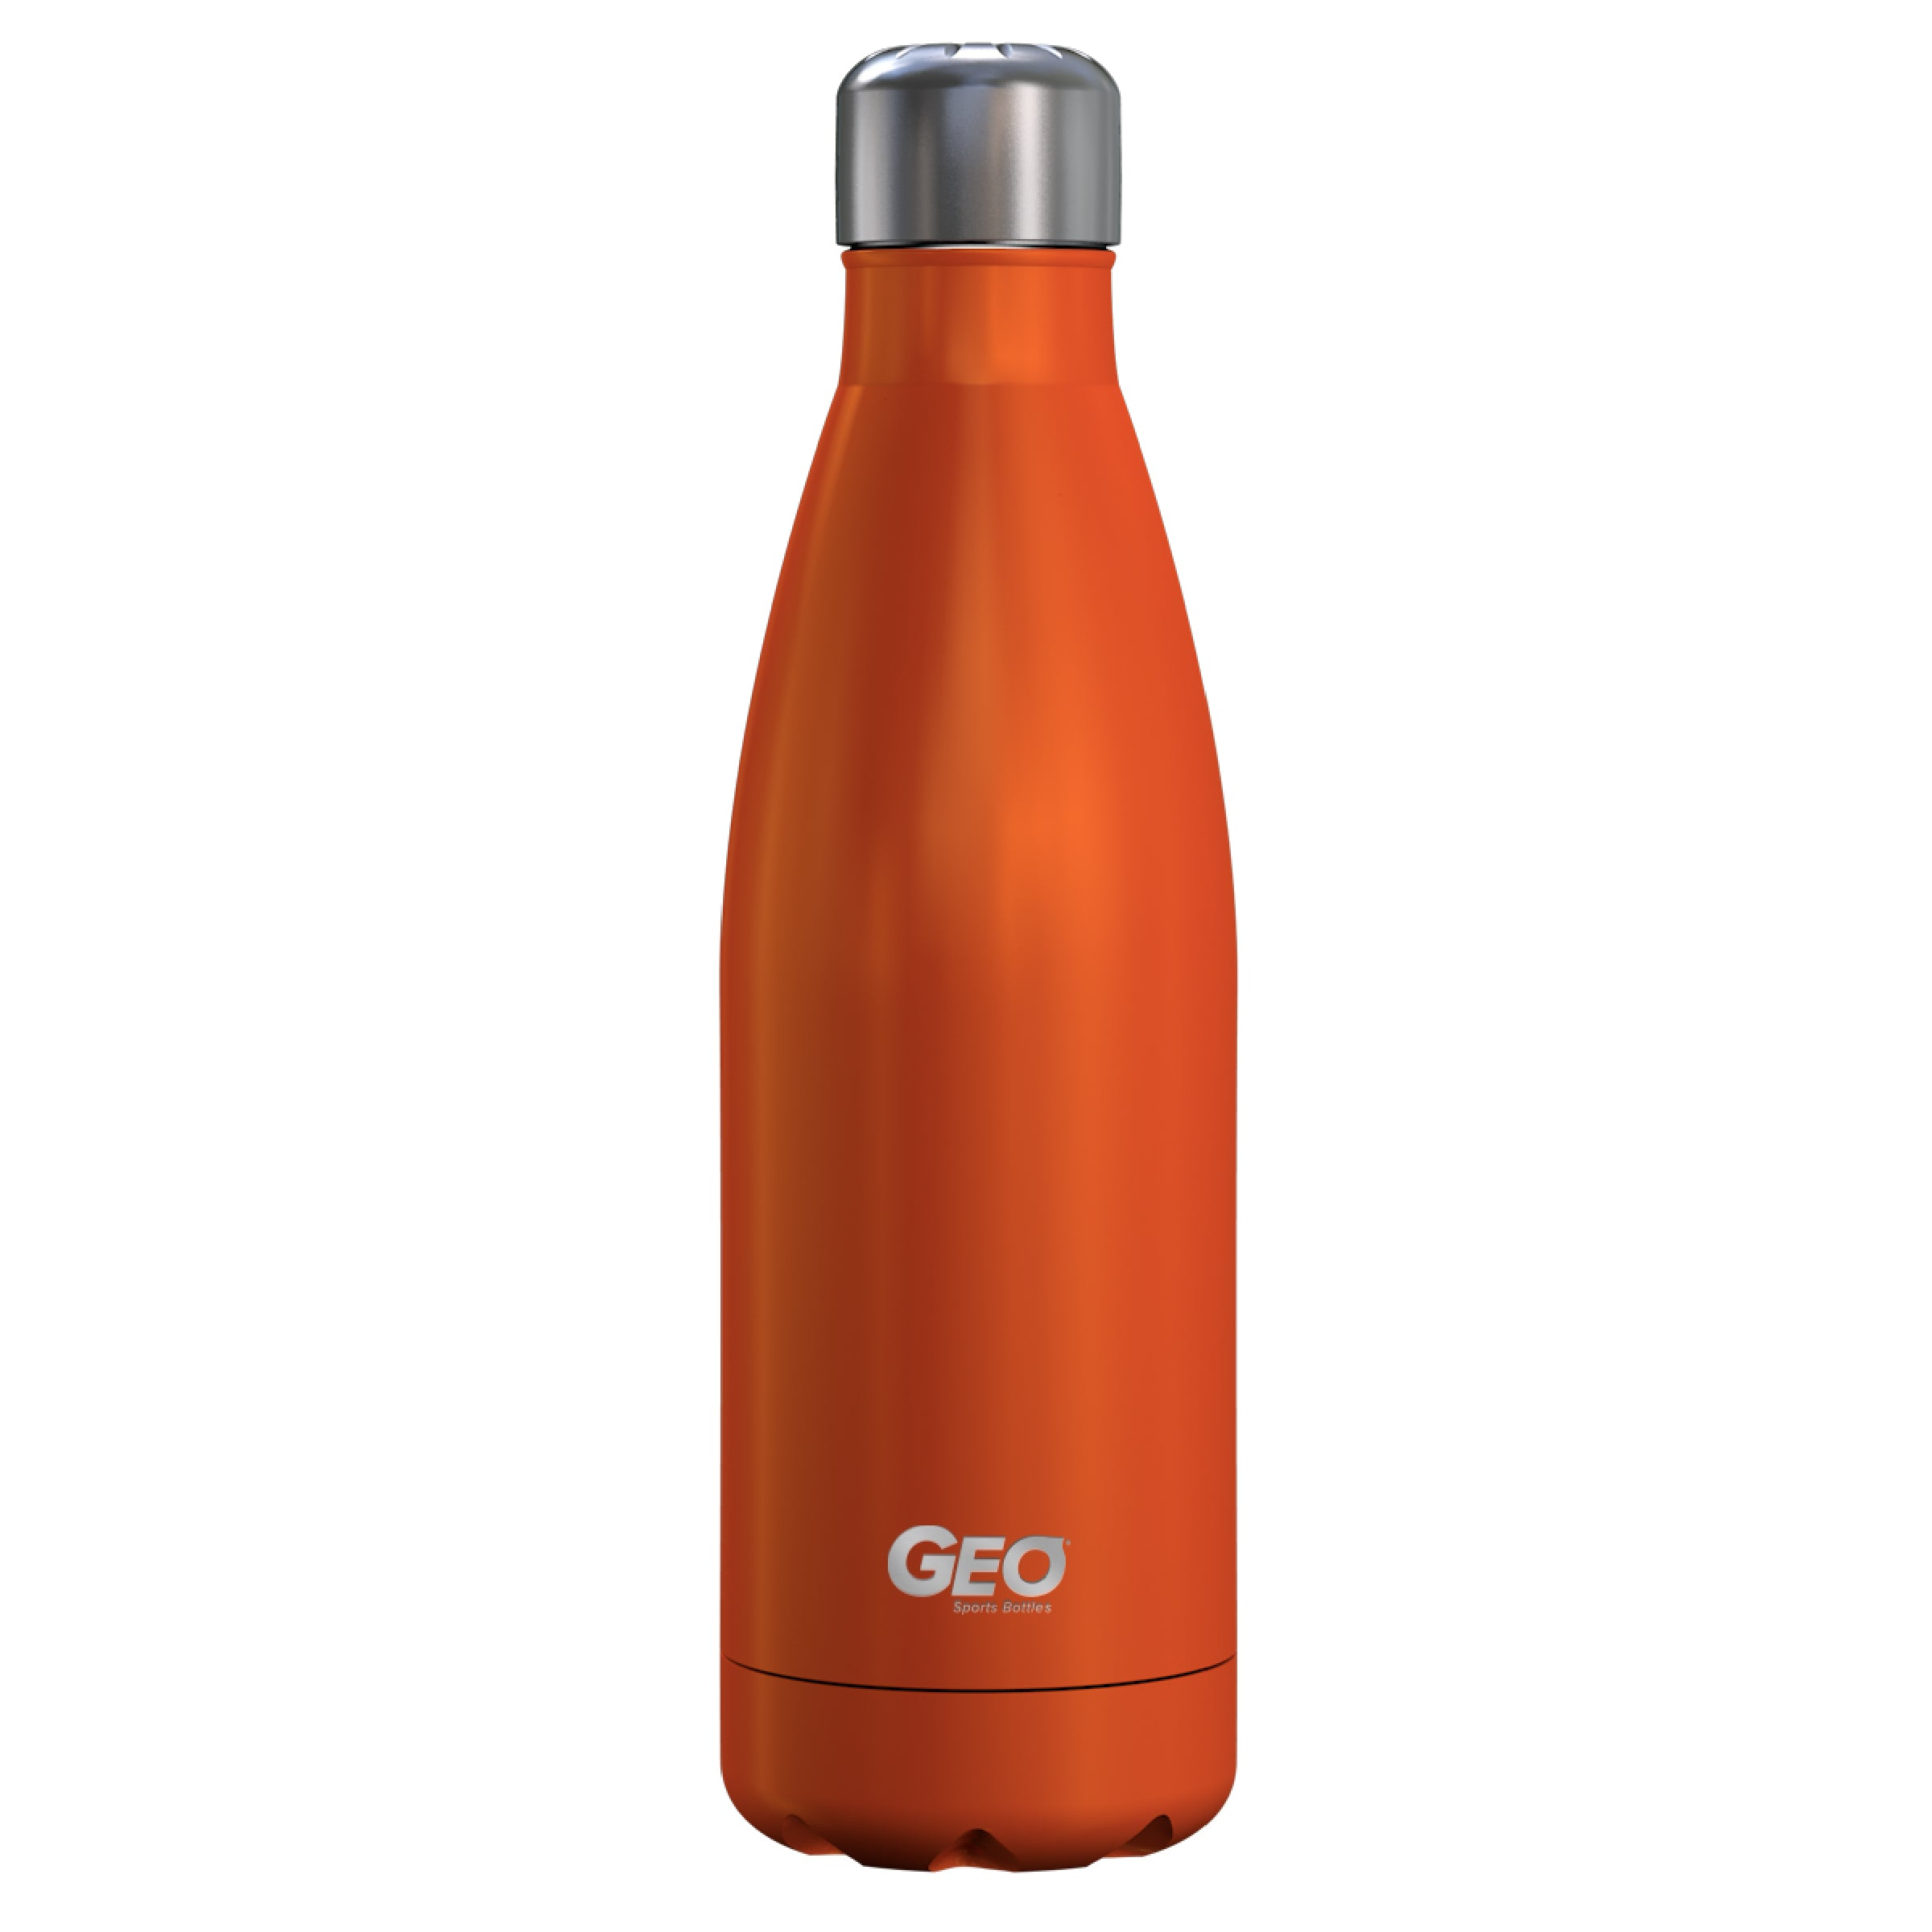 17oz Double Wall Vacuum Insulated Flask, Gloss Finish